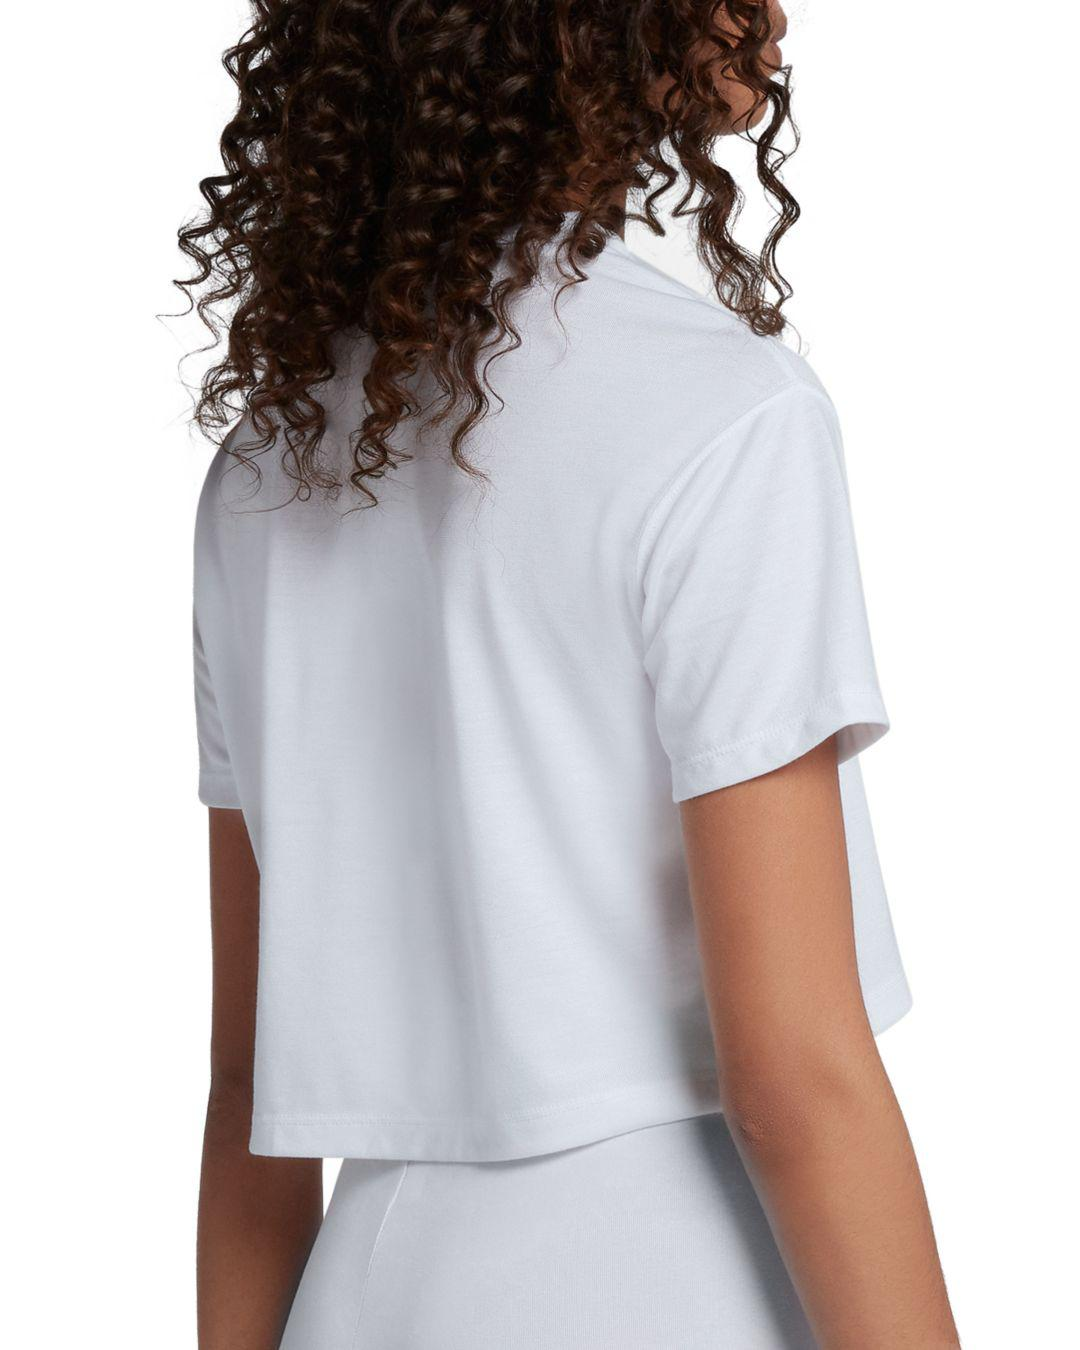 69110a78ac4 Lyst - Nike Essential Logo Cropped Tee in White - Save 50%